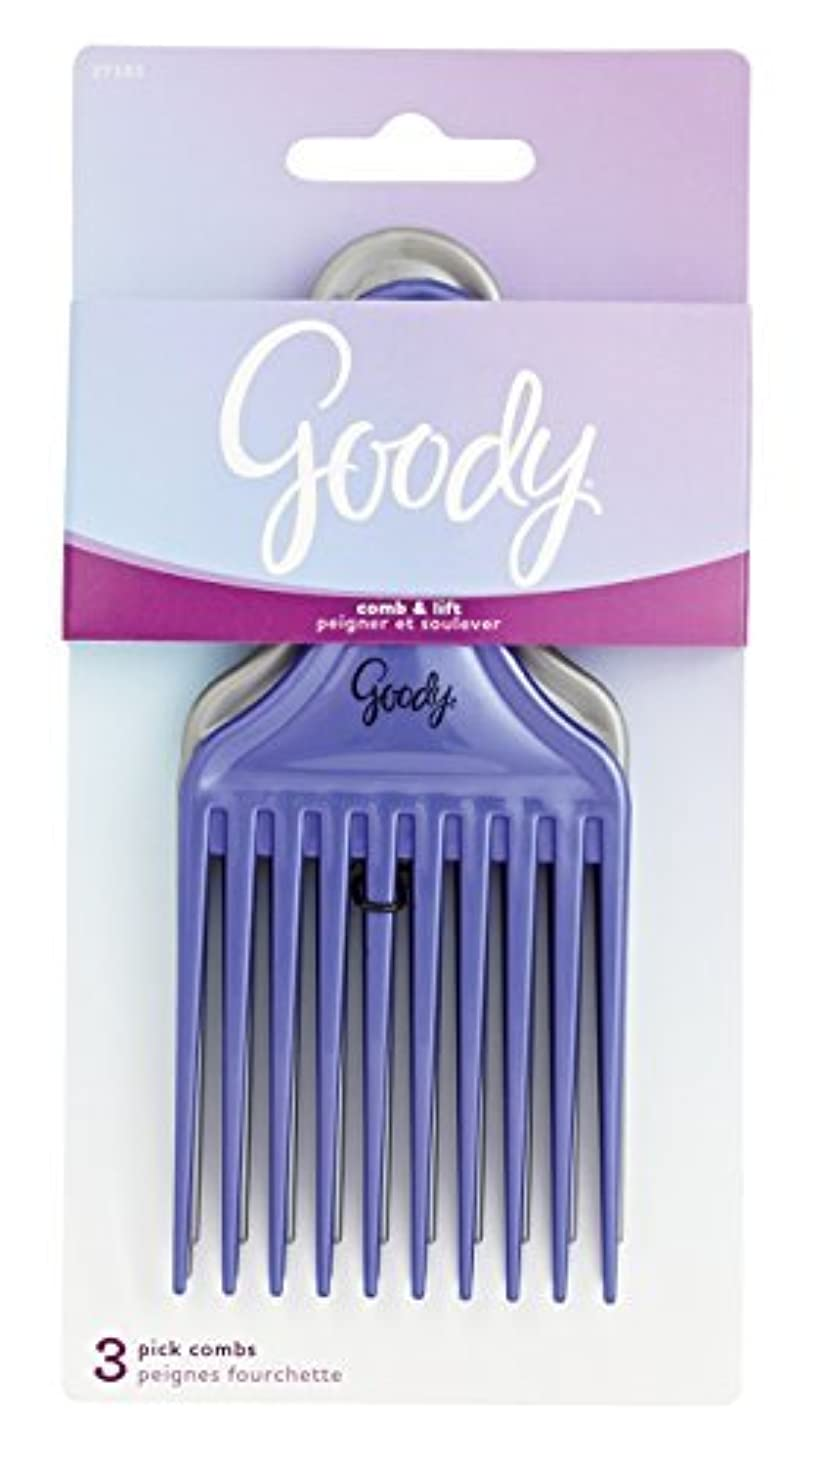 Goody Comb & Lift Hair Pick, 3 Count, Assorted Colors [並行輸入品]